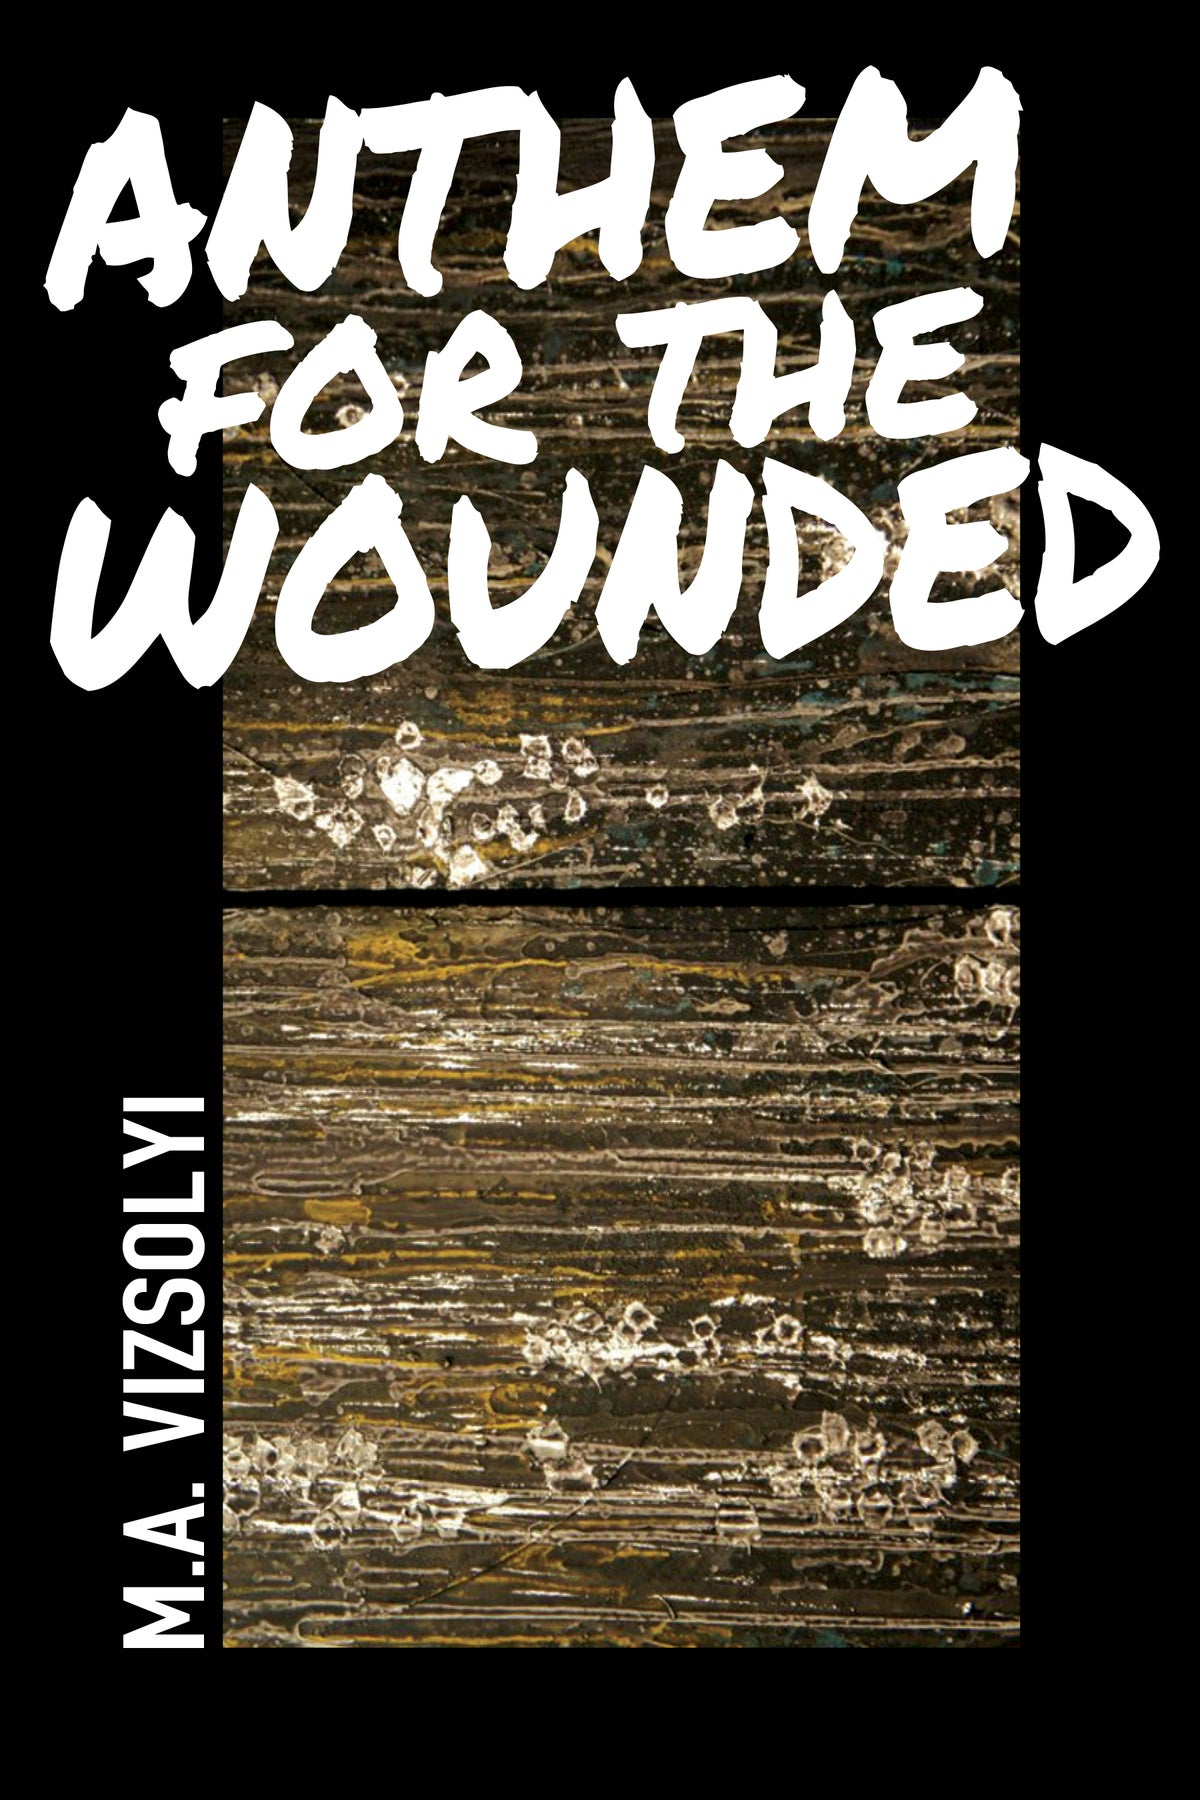 Image of Anthem for the Wounded by M.A. Vizsolyi